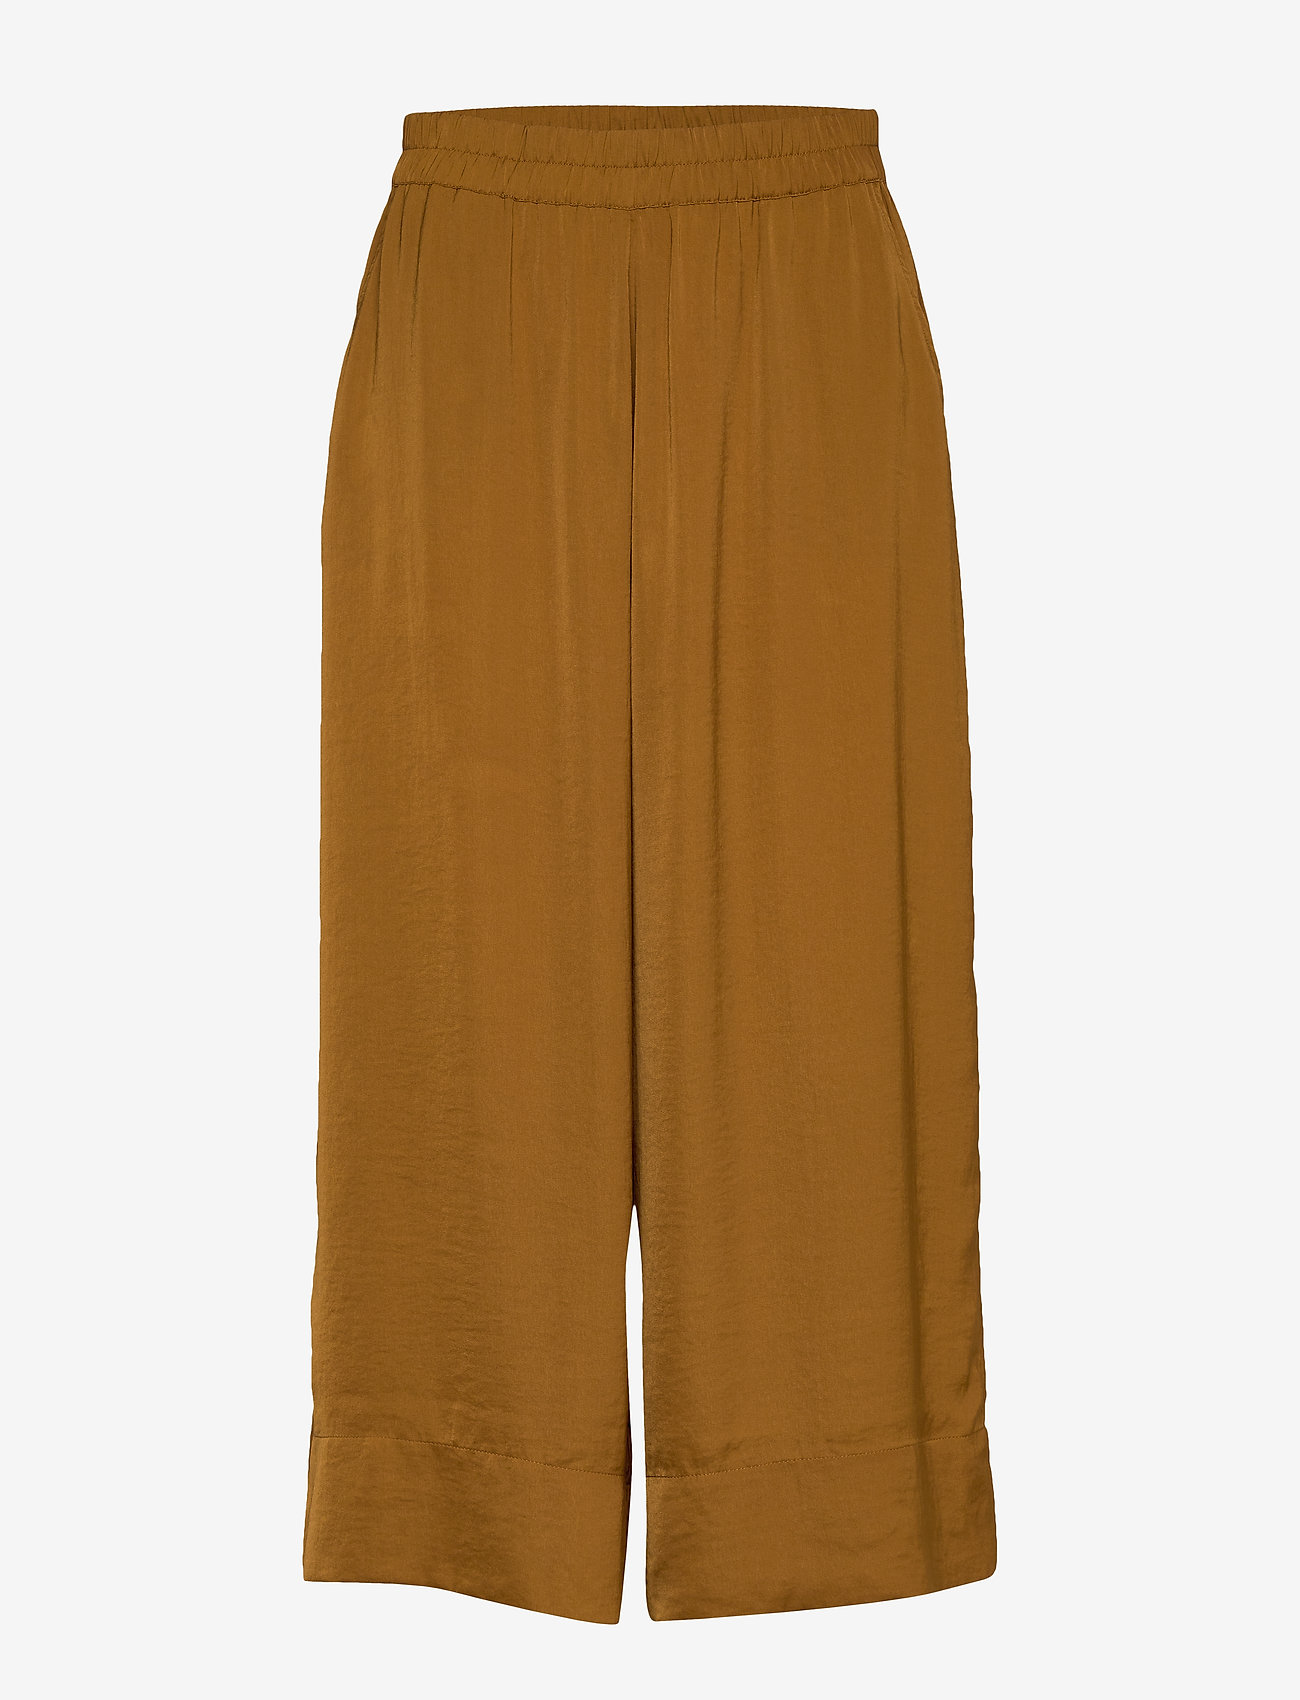 Minga New Trousers (Tapenade) - Second Female sUfguc